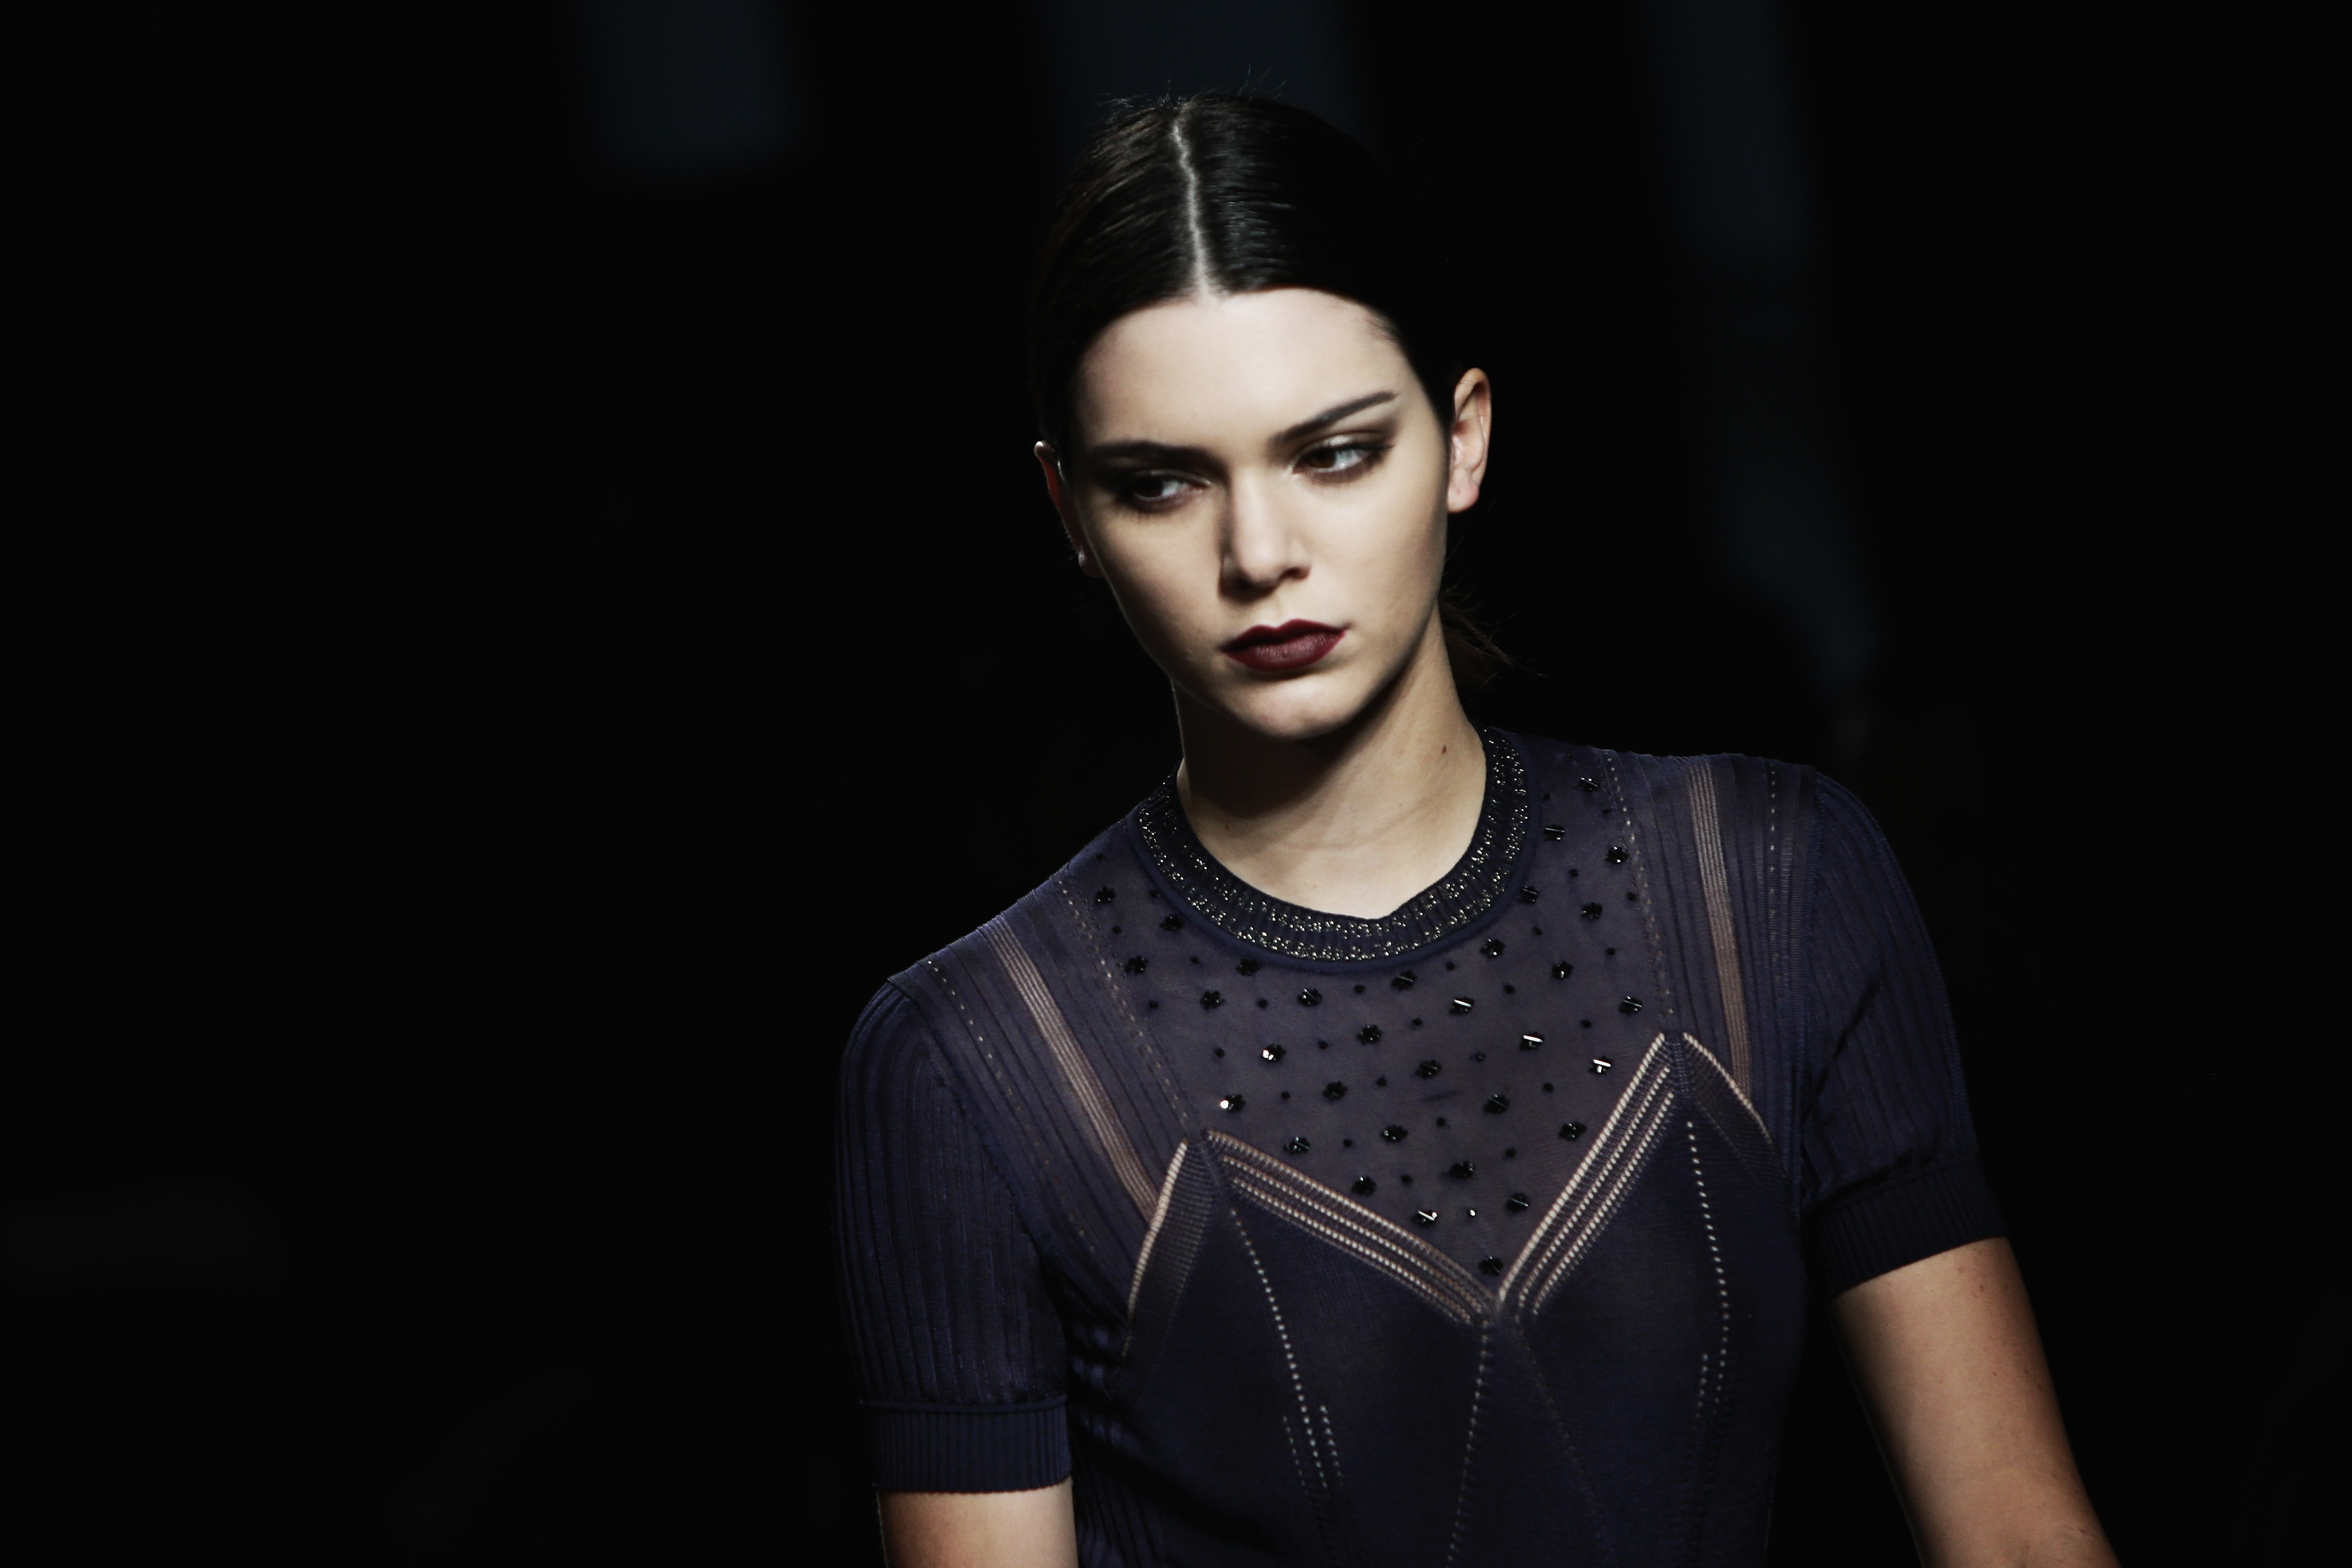 MILAN, ITALY - FEBRUARY 27:  (EDITORS NOTE: Image has been desaturated.) Kendall Jenner walks the runway at the Bottega Veneta show during Milan Fashion Week Fall/Winter 2016/17 on February 27, 2016 in Milan, Italy.  (Photo by Vittorio Zunino Celotto/Getty Images)